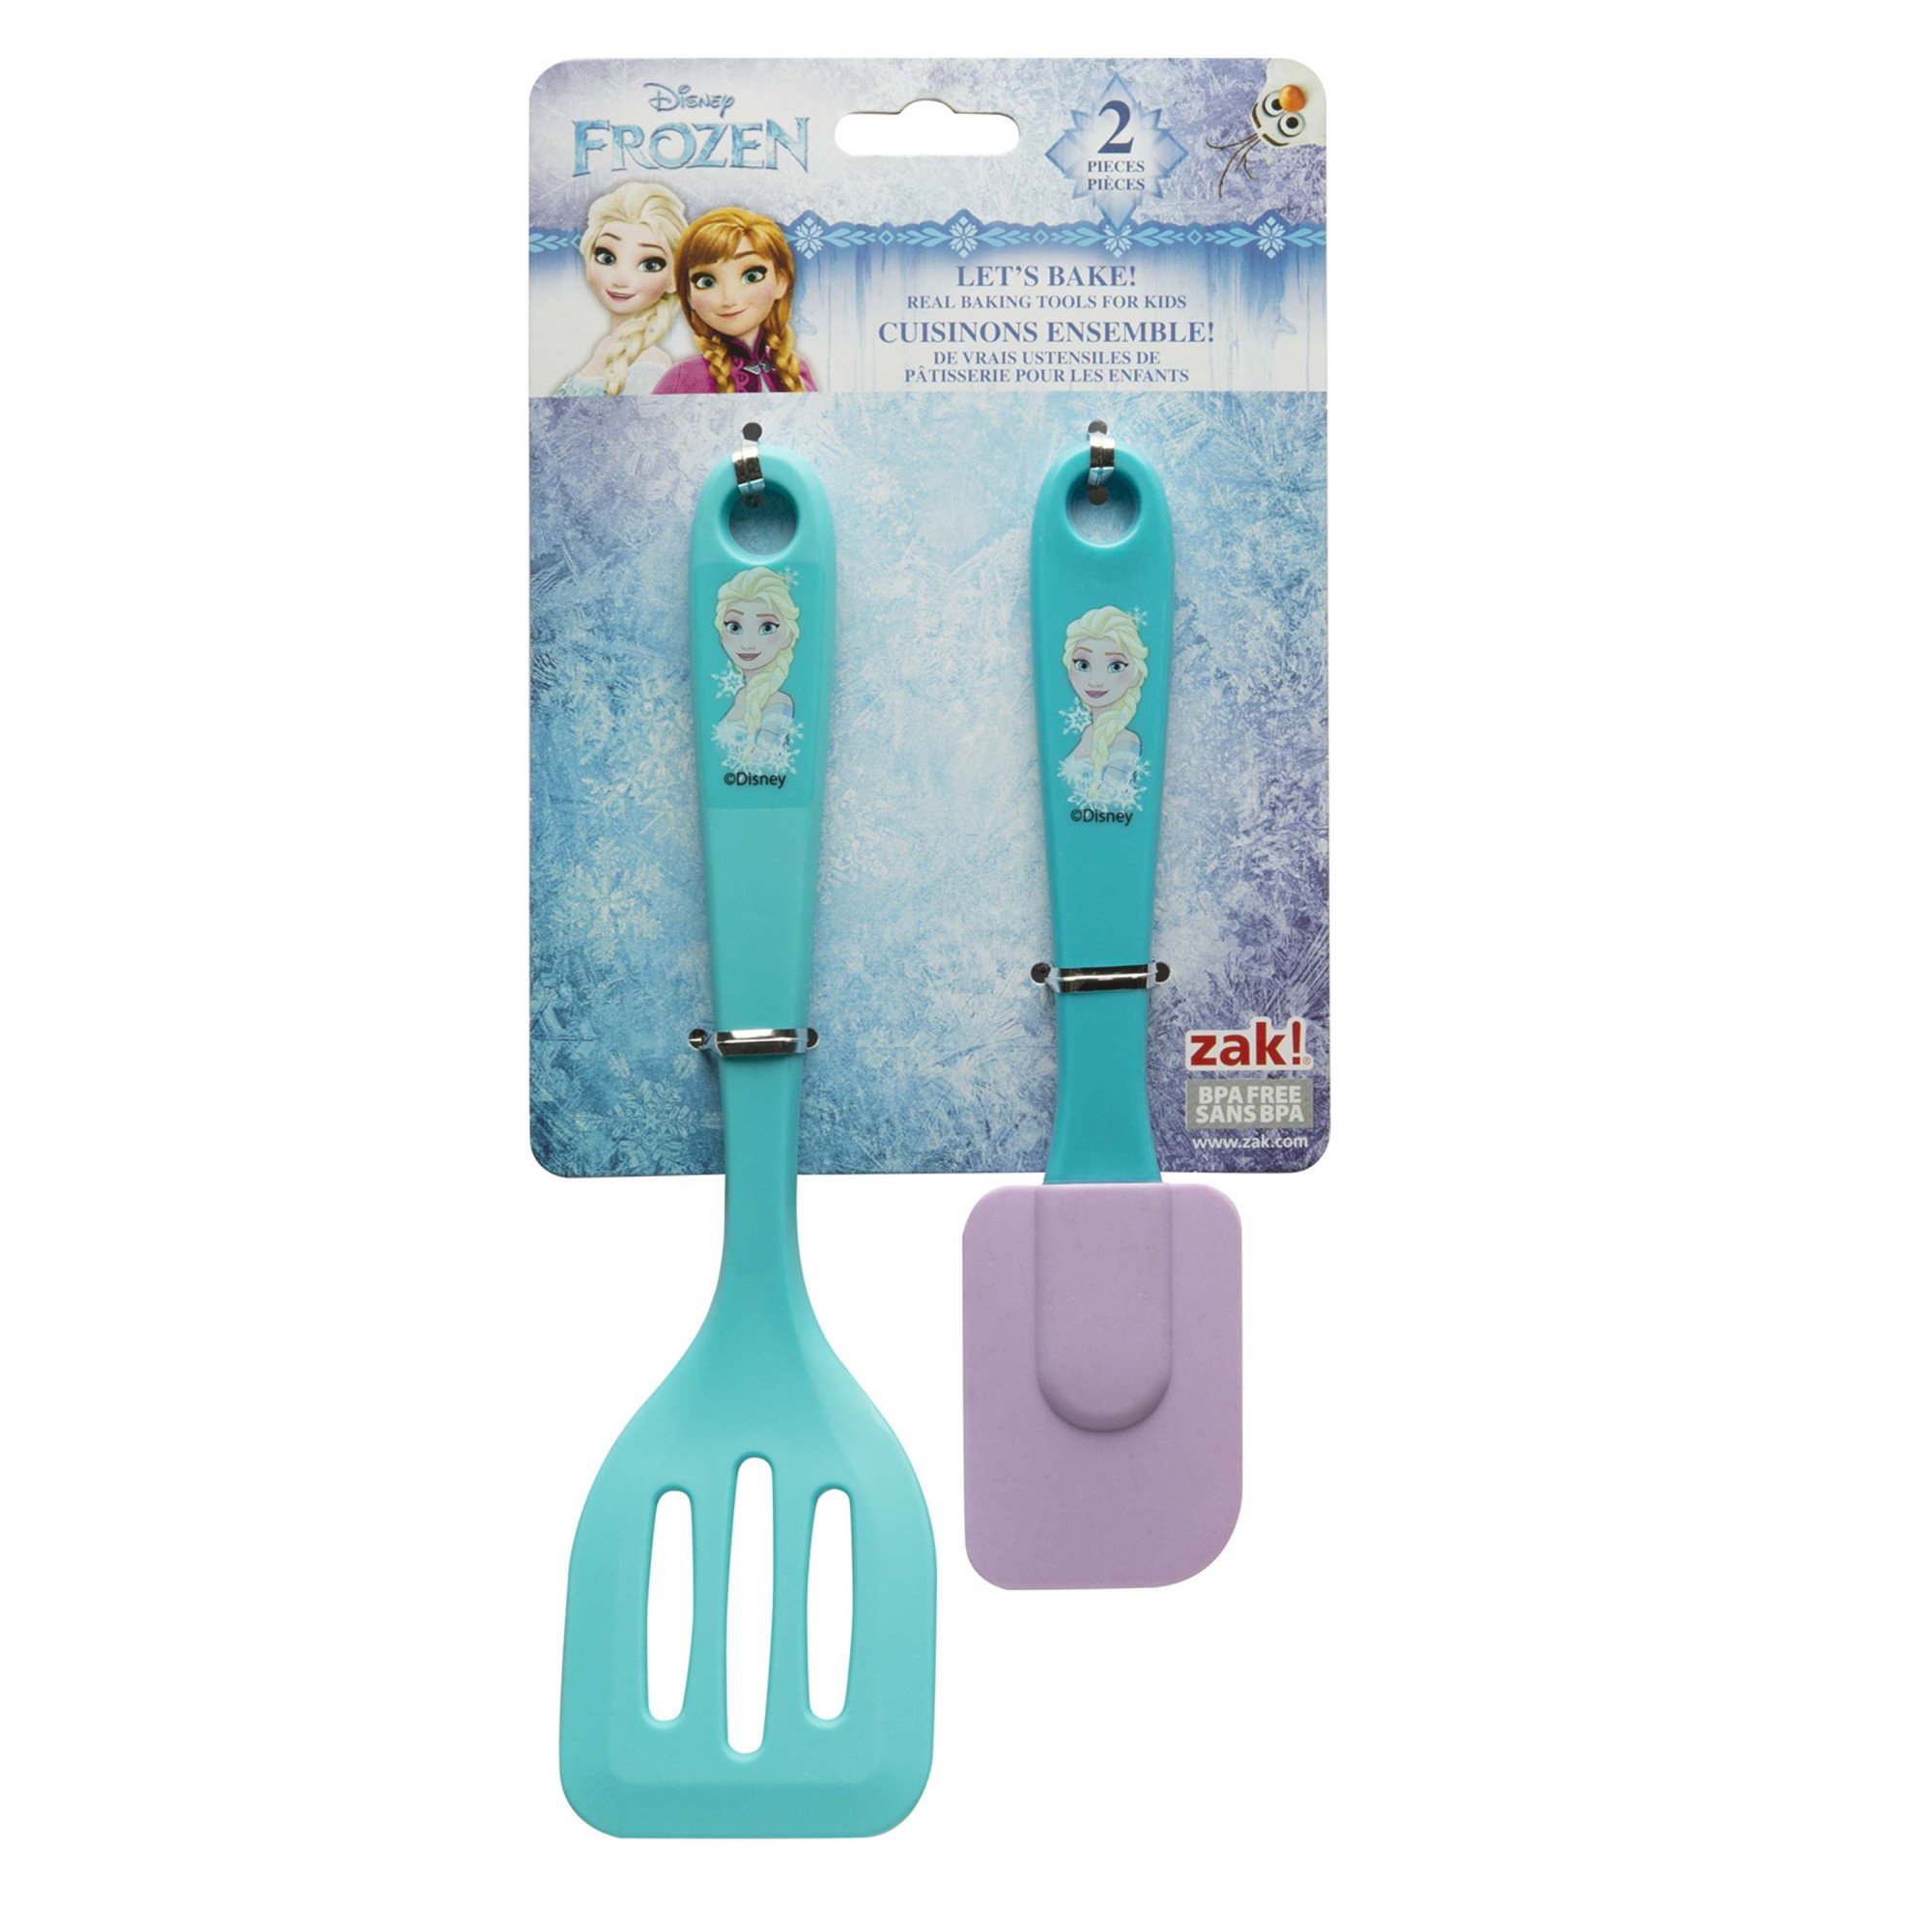 Zak Designs Lets Bake! Turner and Spatula for Cooking with Kids, Princess Elsa